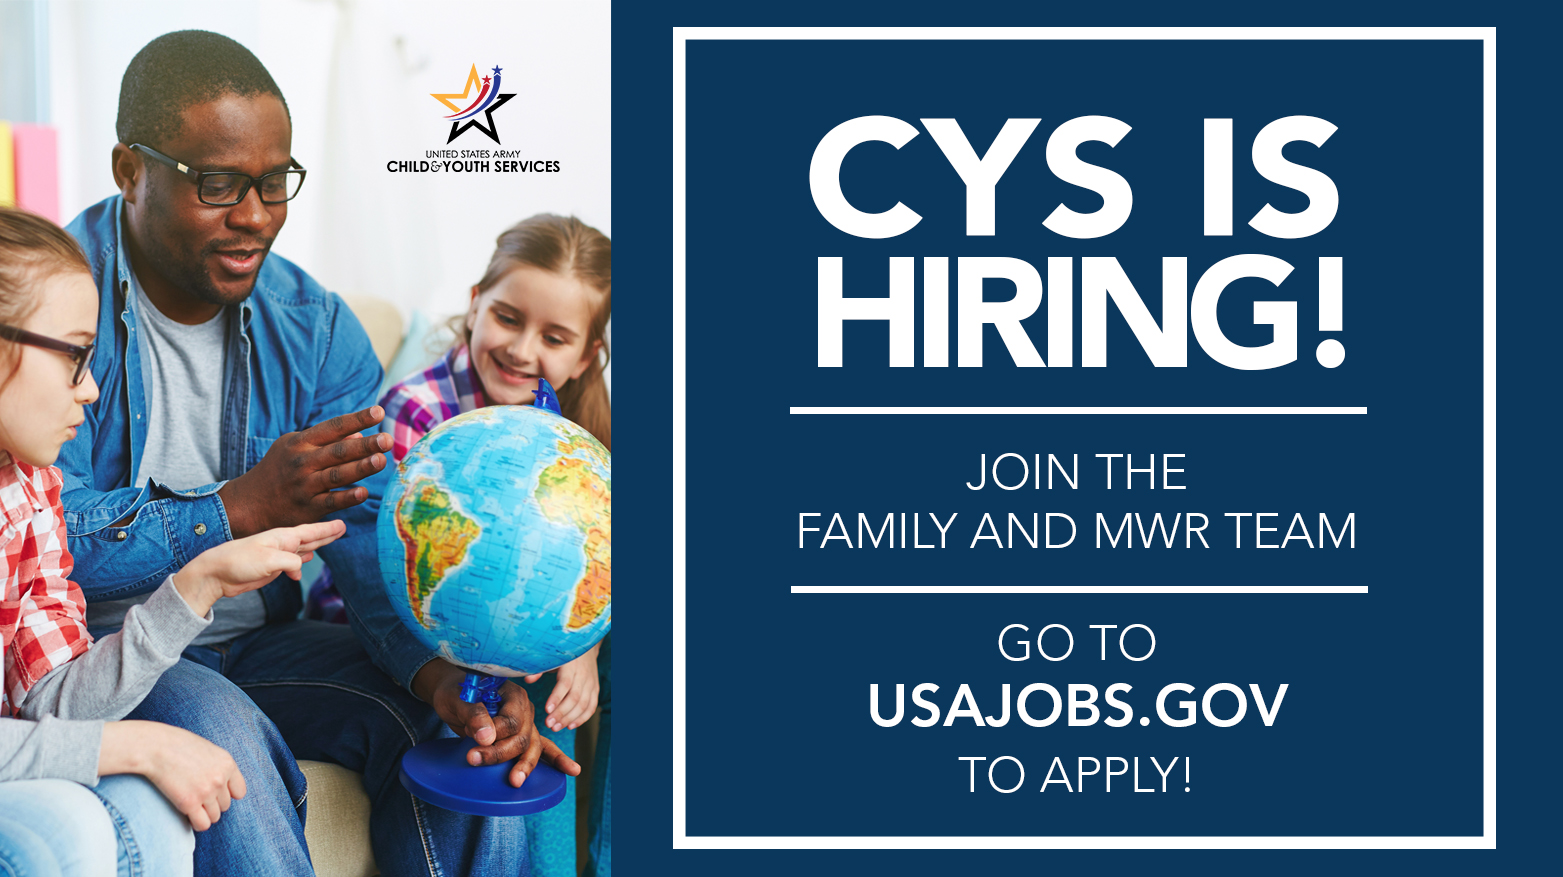 CYS is Hiring!